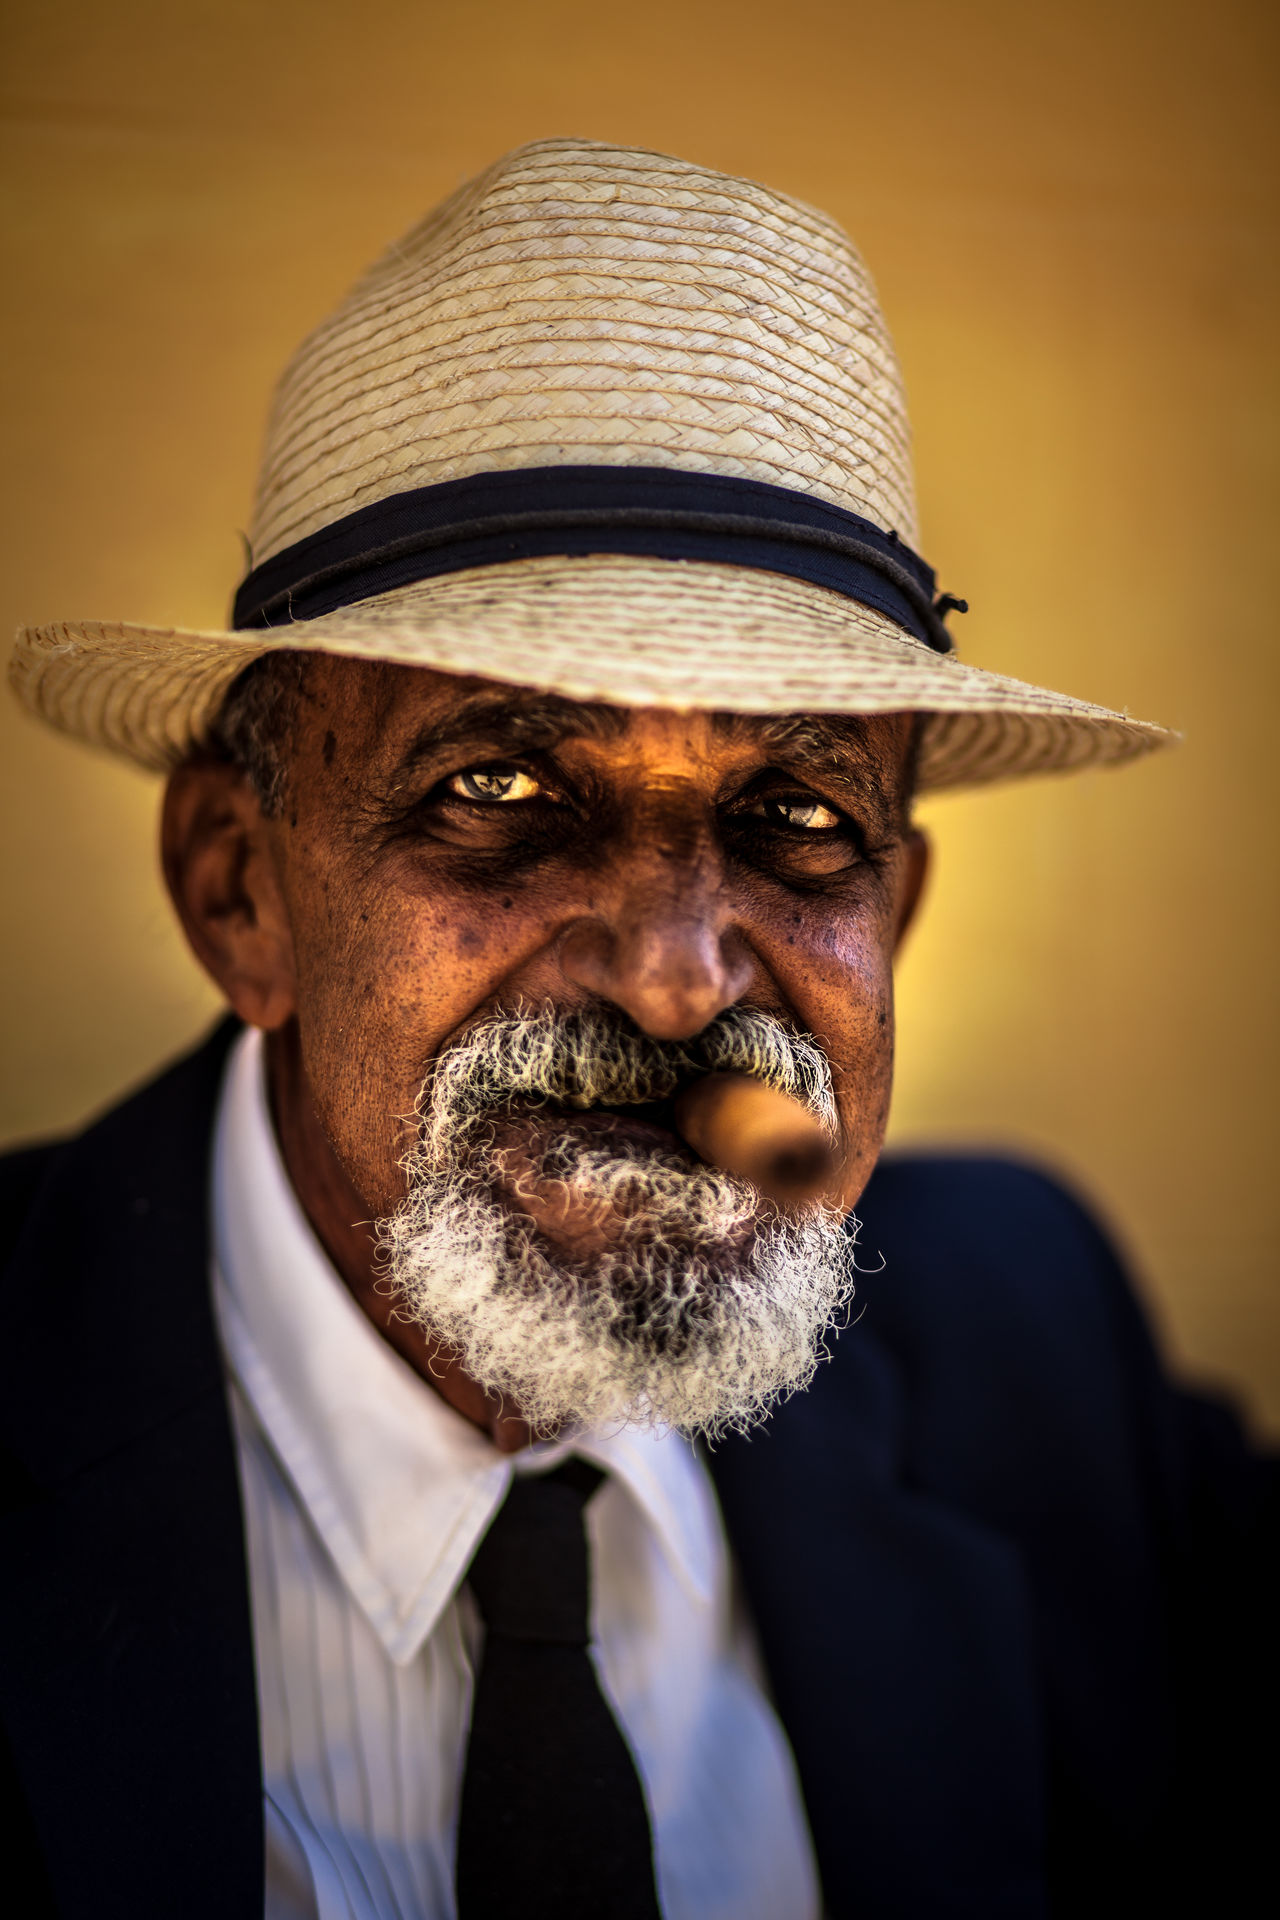 A cuban man poses for tourist' pictures. Cuba Cuban Man Portrait Sigar Straw Hat Travel Trinidad